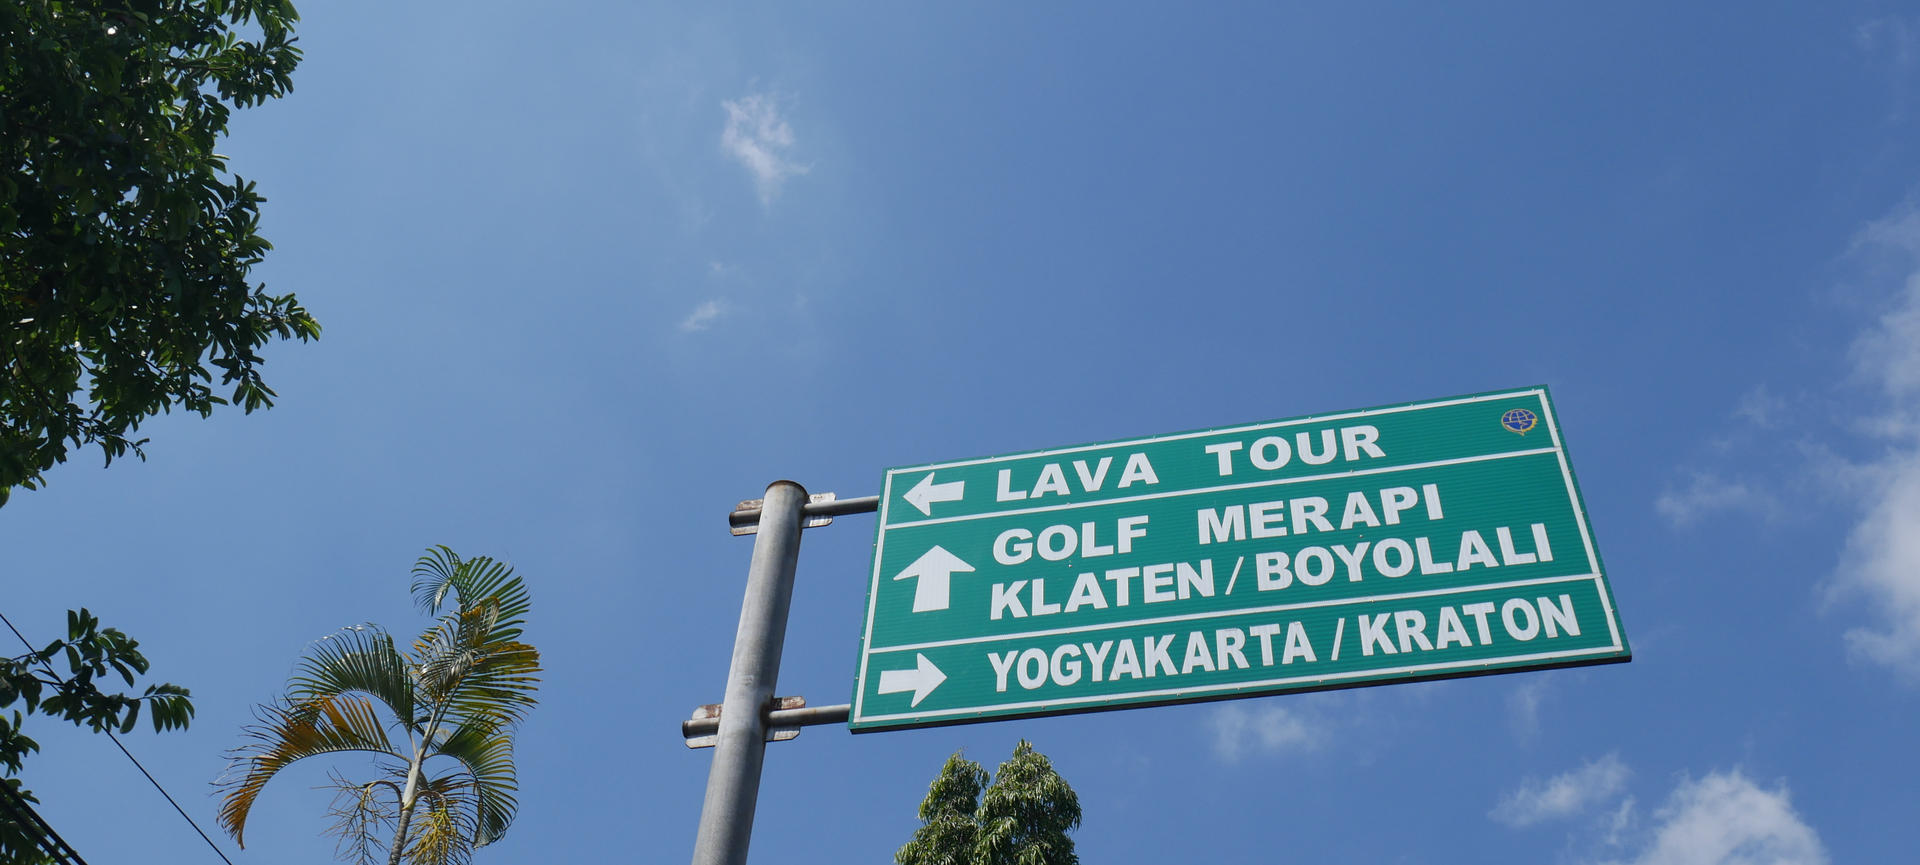 A Local Guide To Merapi Lava Tour In Java, Indonesia